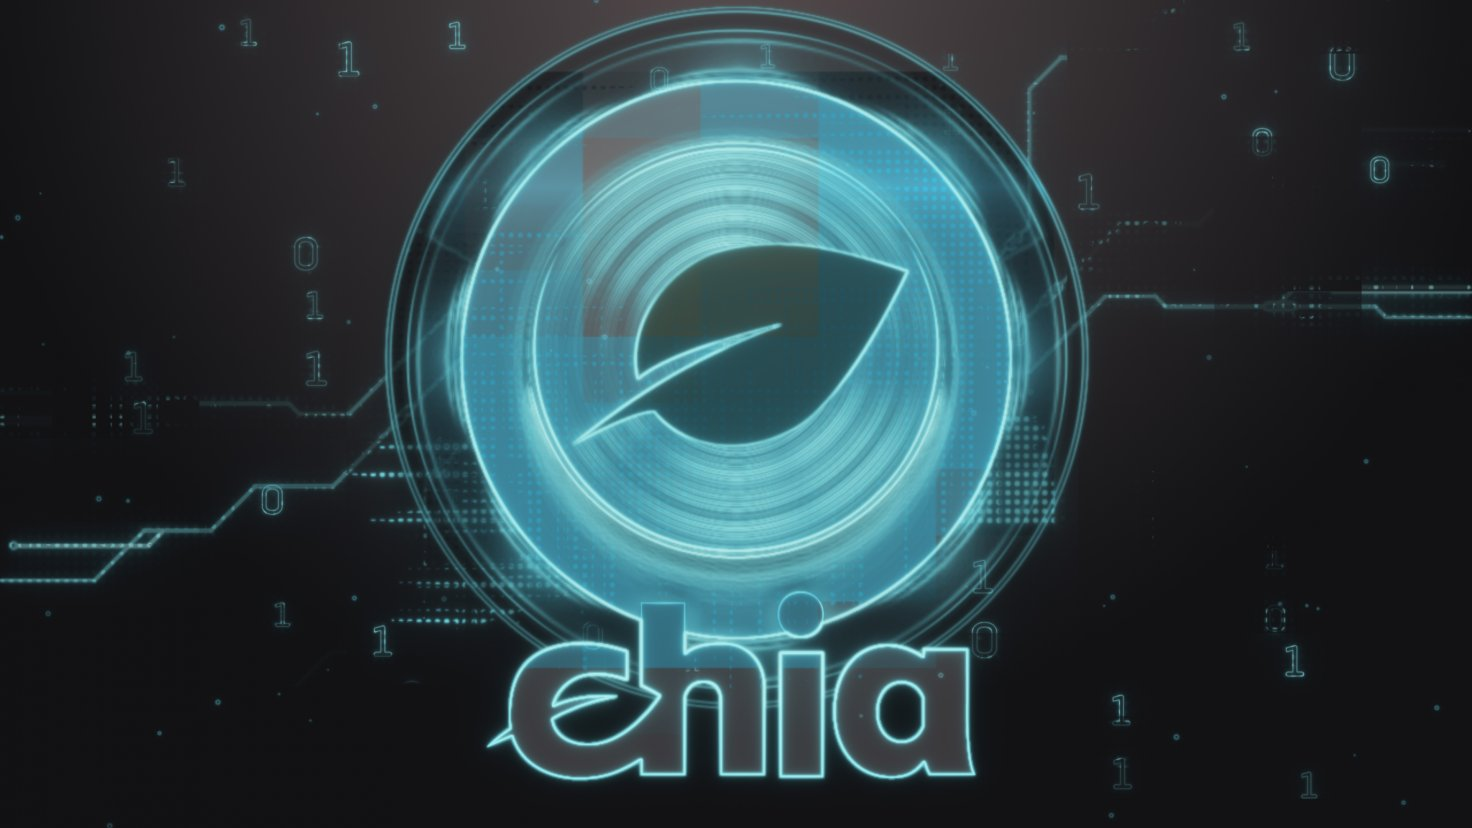 How to farm Chia on Multiple Computers (Harvester Chia)